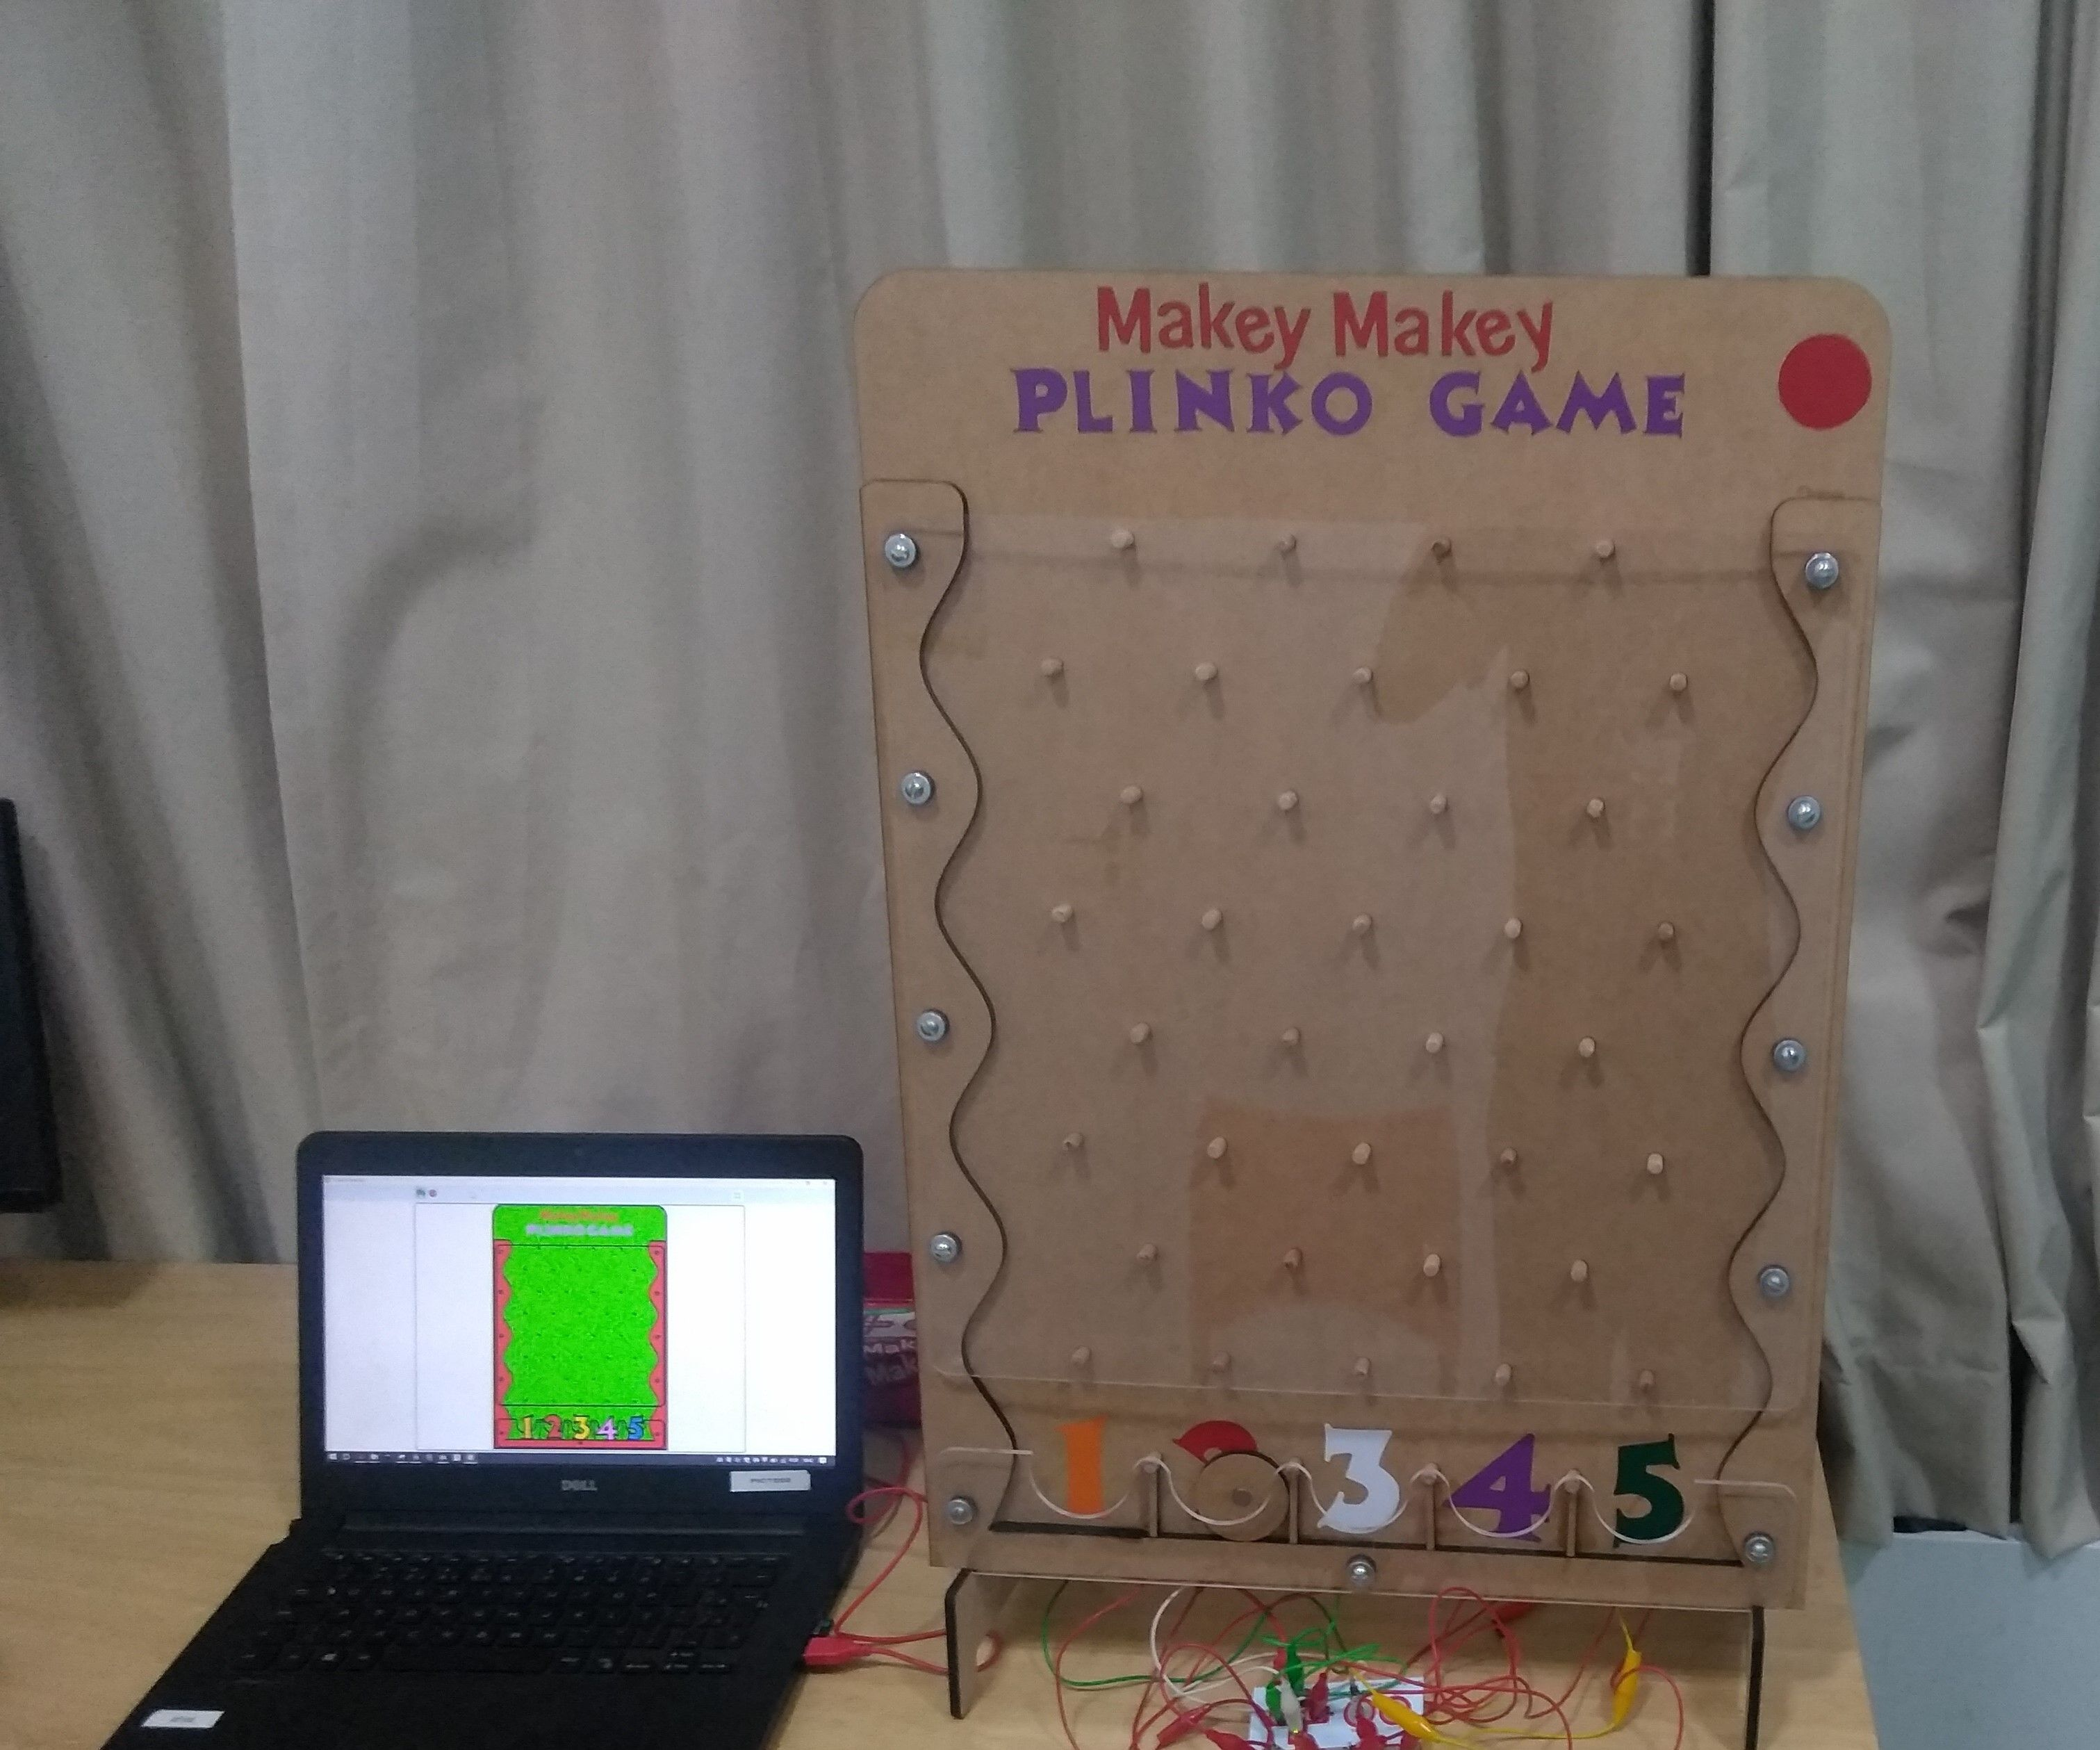 Magnetic Plinko Game With Makey Makey